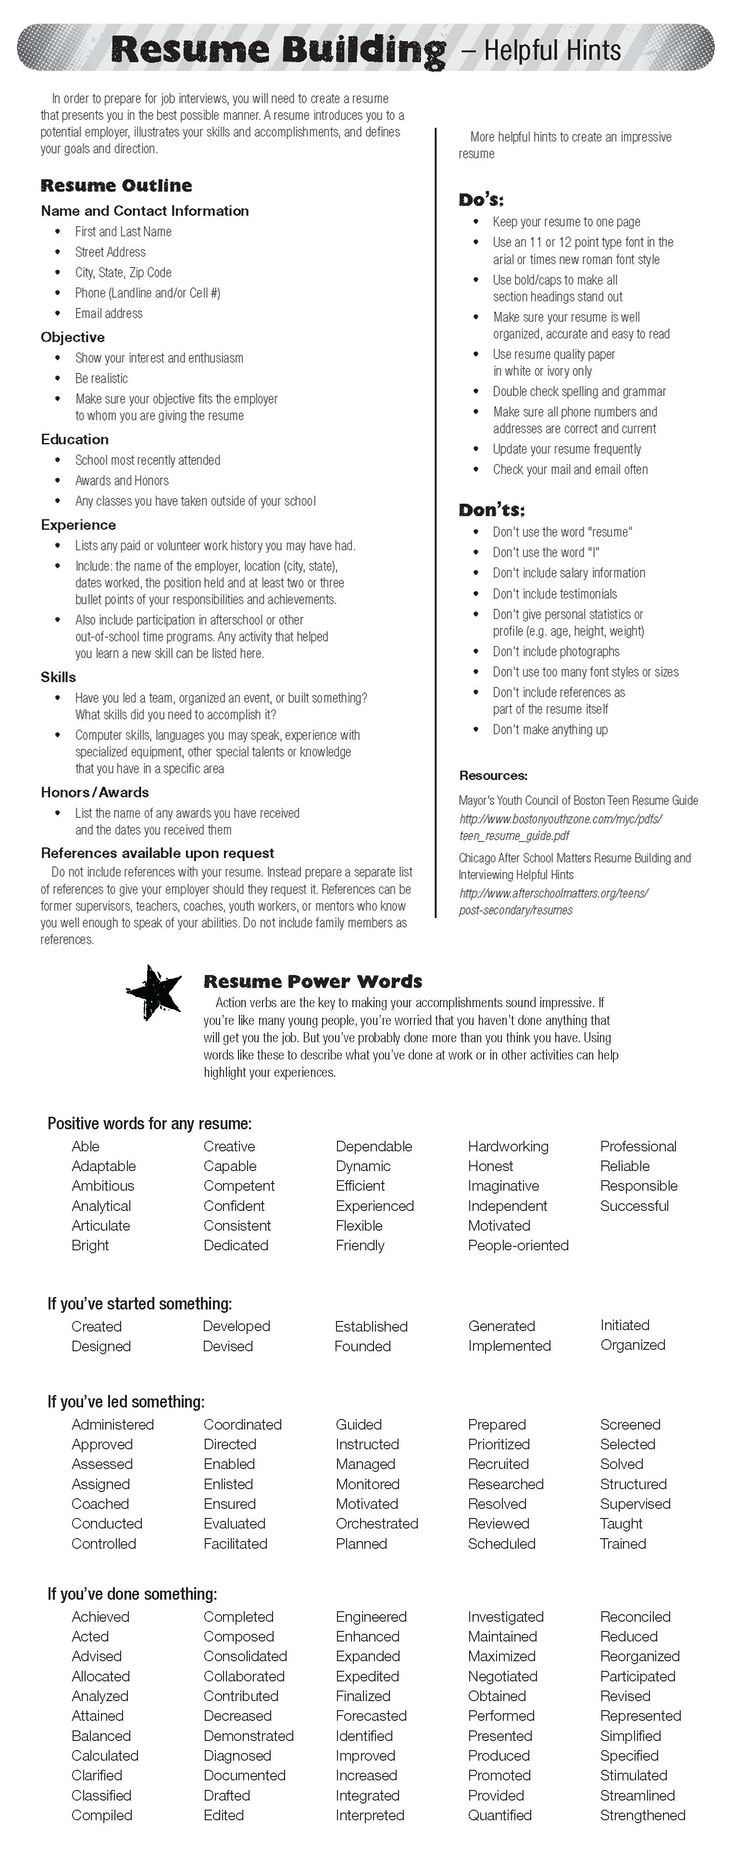 best ideas about resume builder resume job resume building infographic that will help you think through the process of putting together a resume from scratch for u s companies a way to add